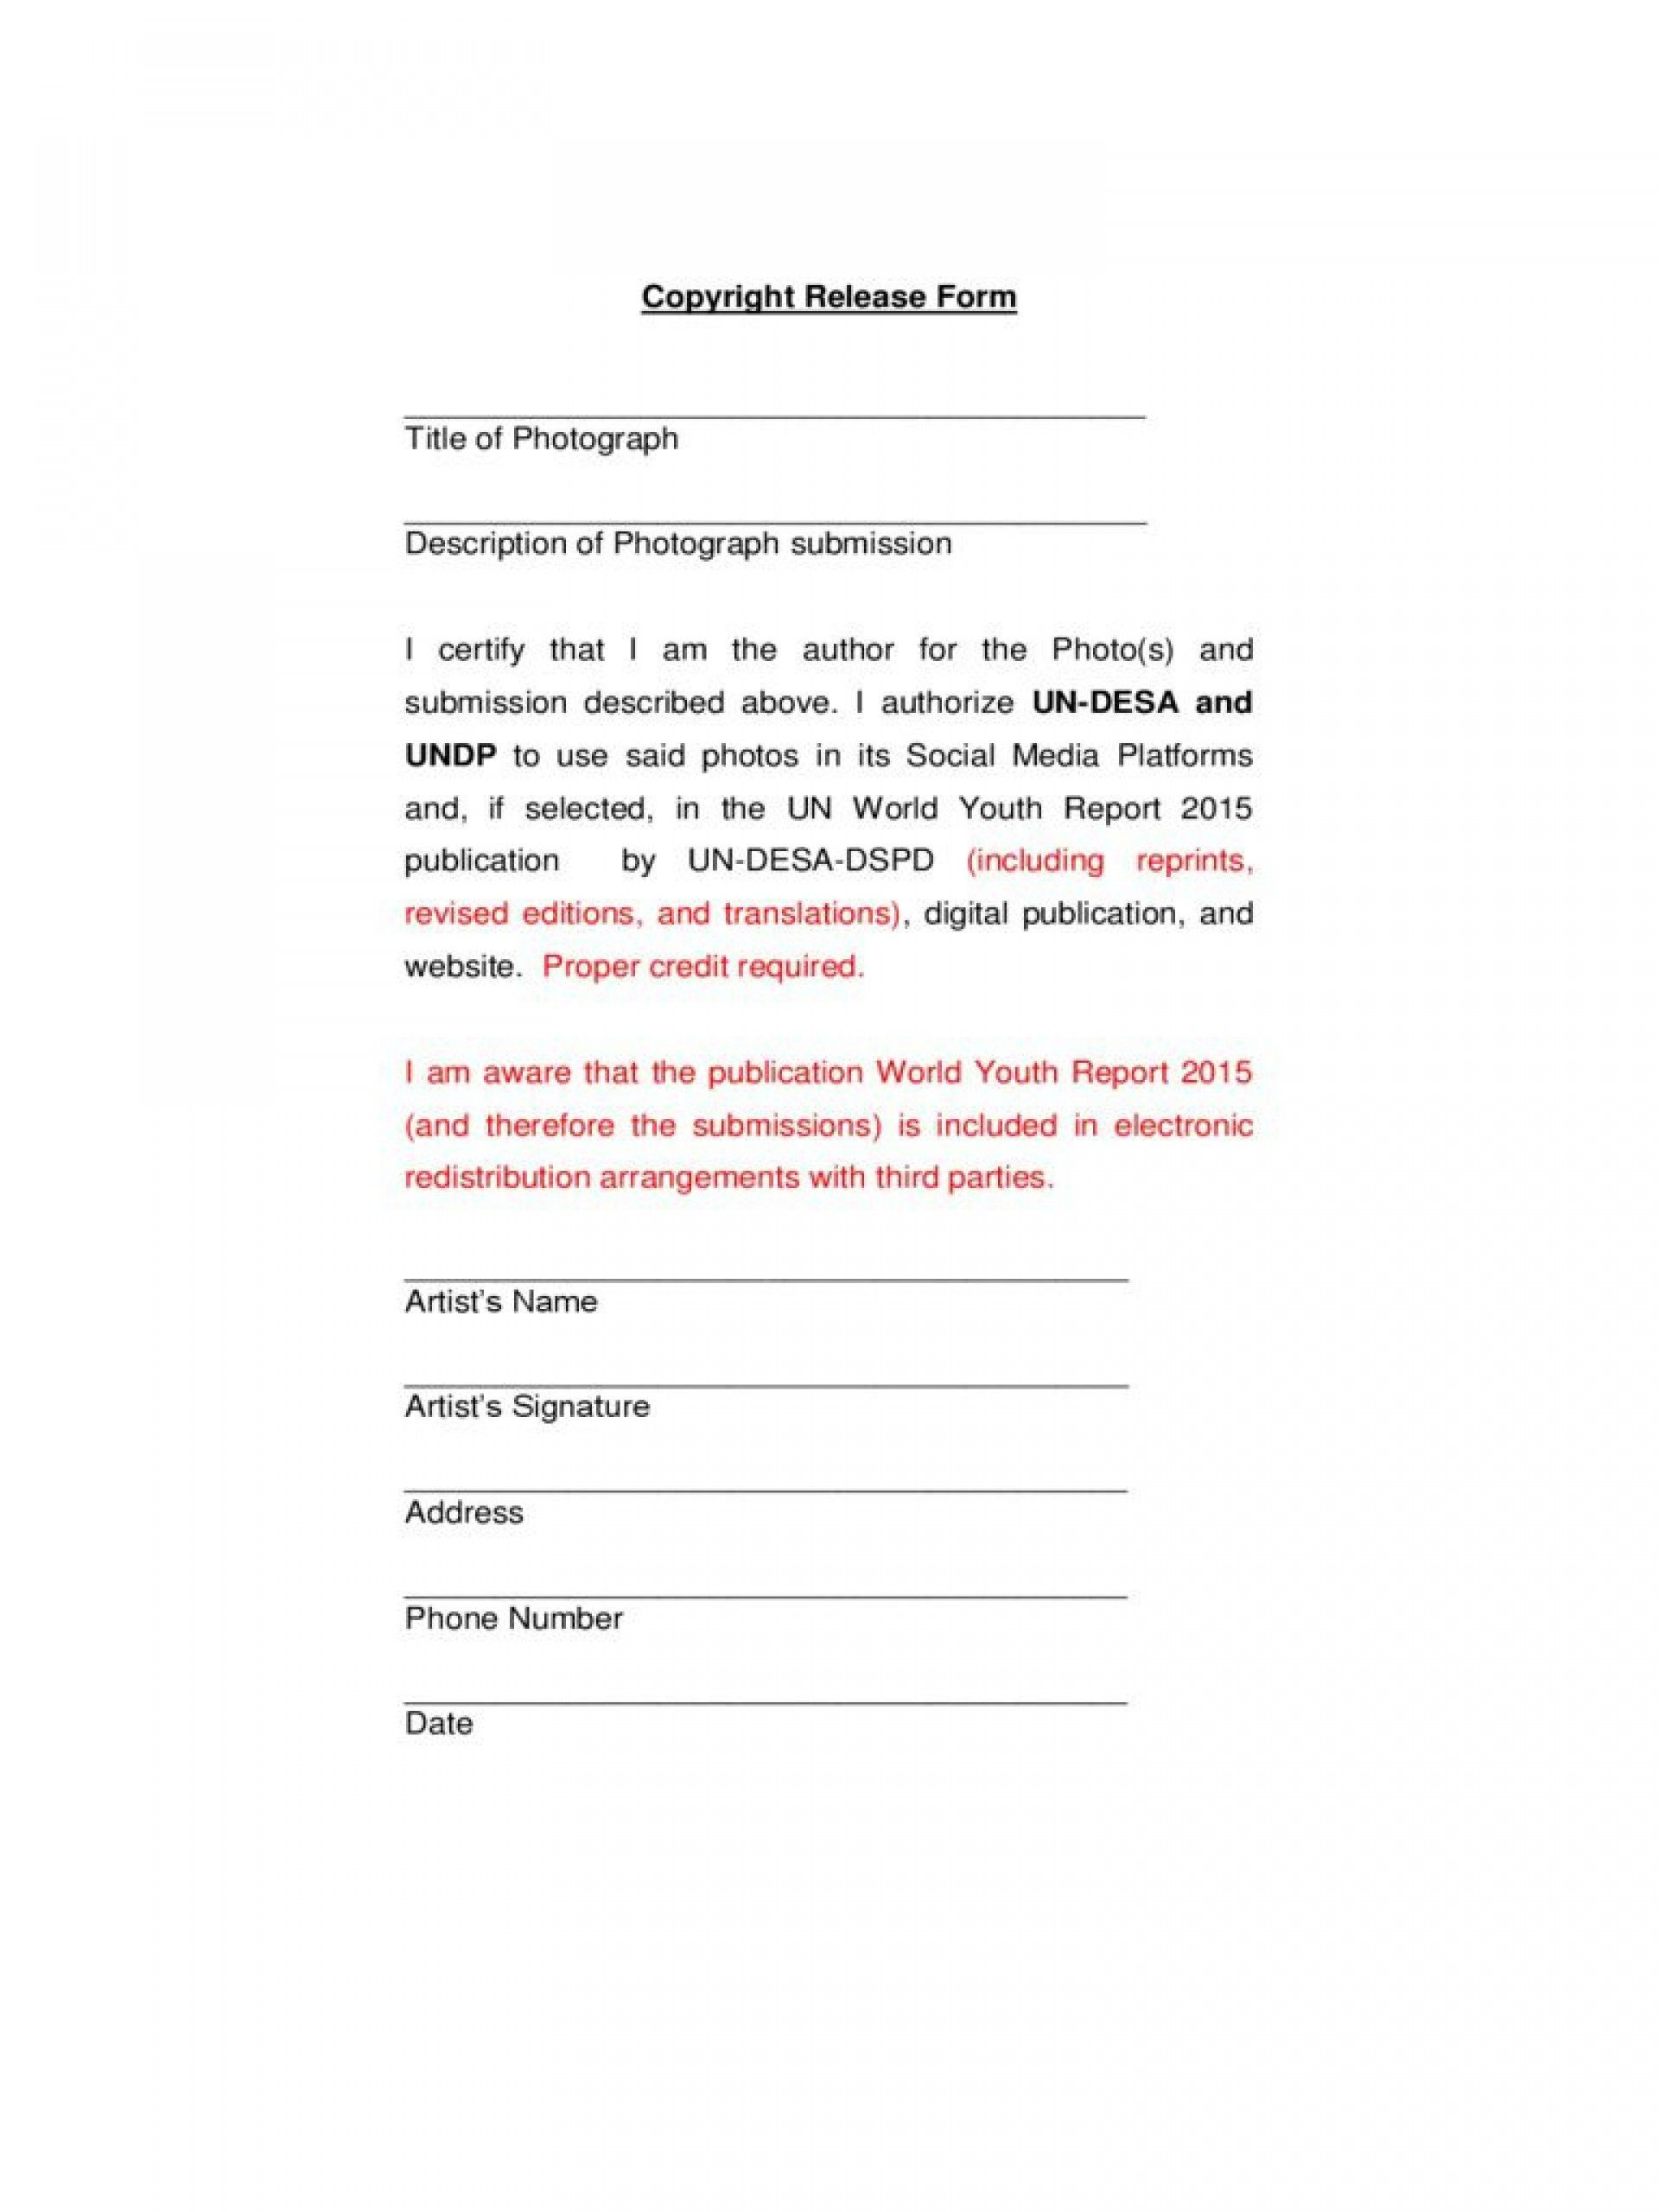 000 Unusual Photo Release Form Template Example  Video Consent Australia Free And1920